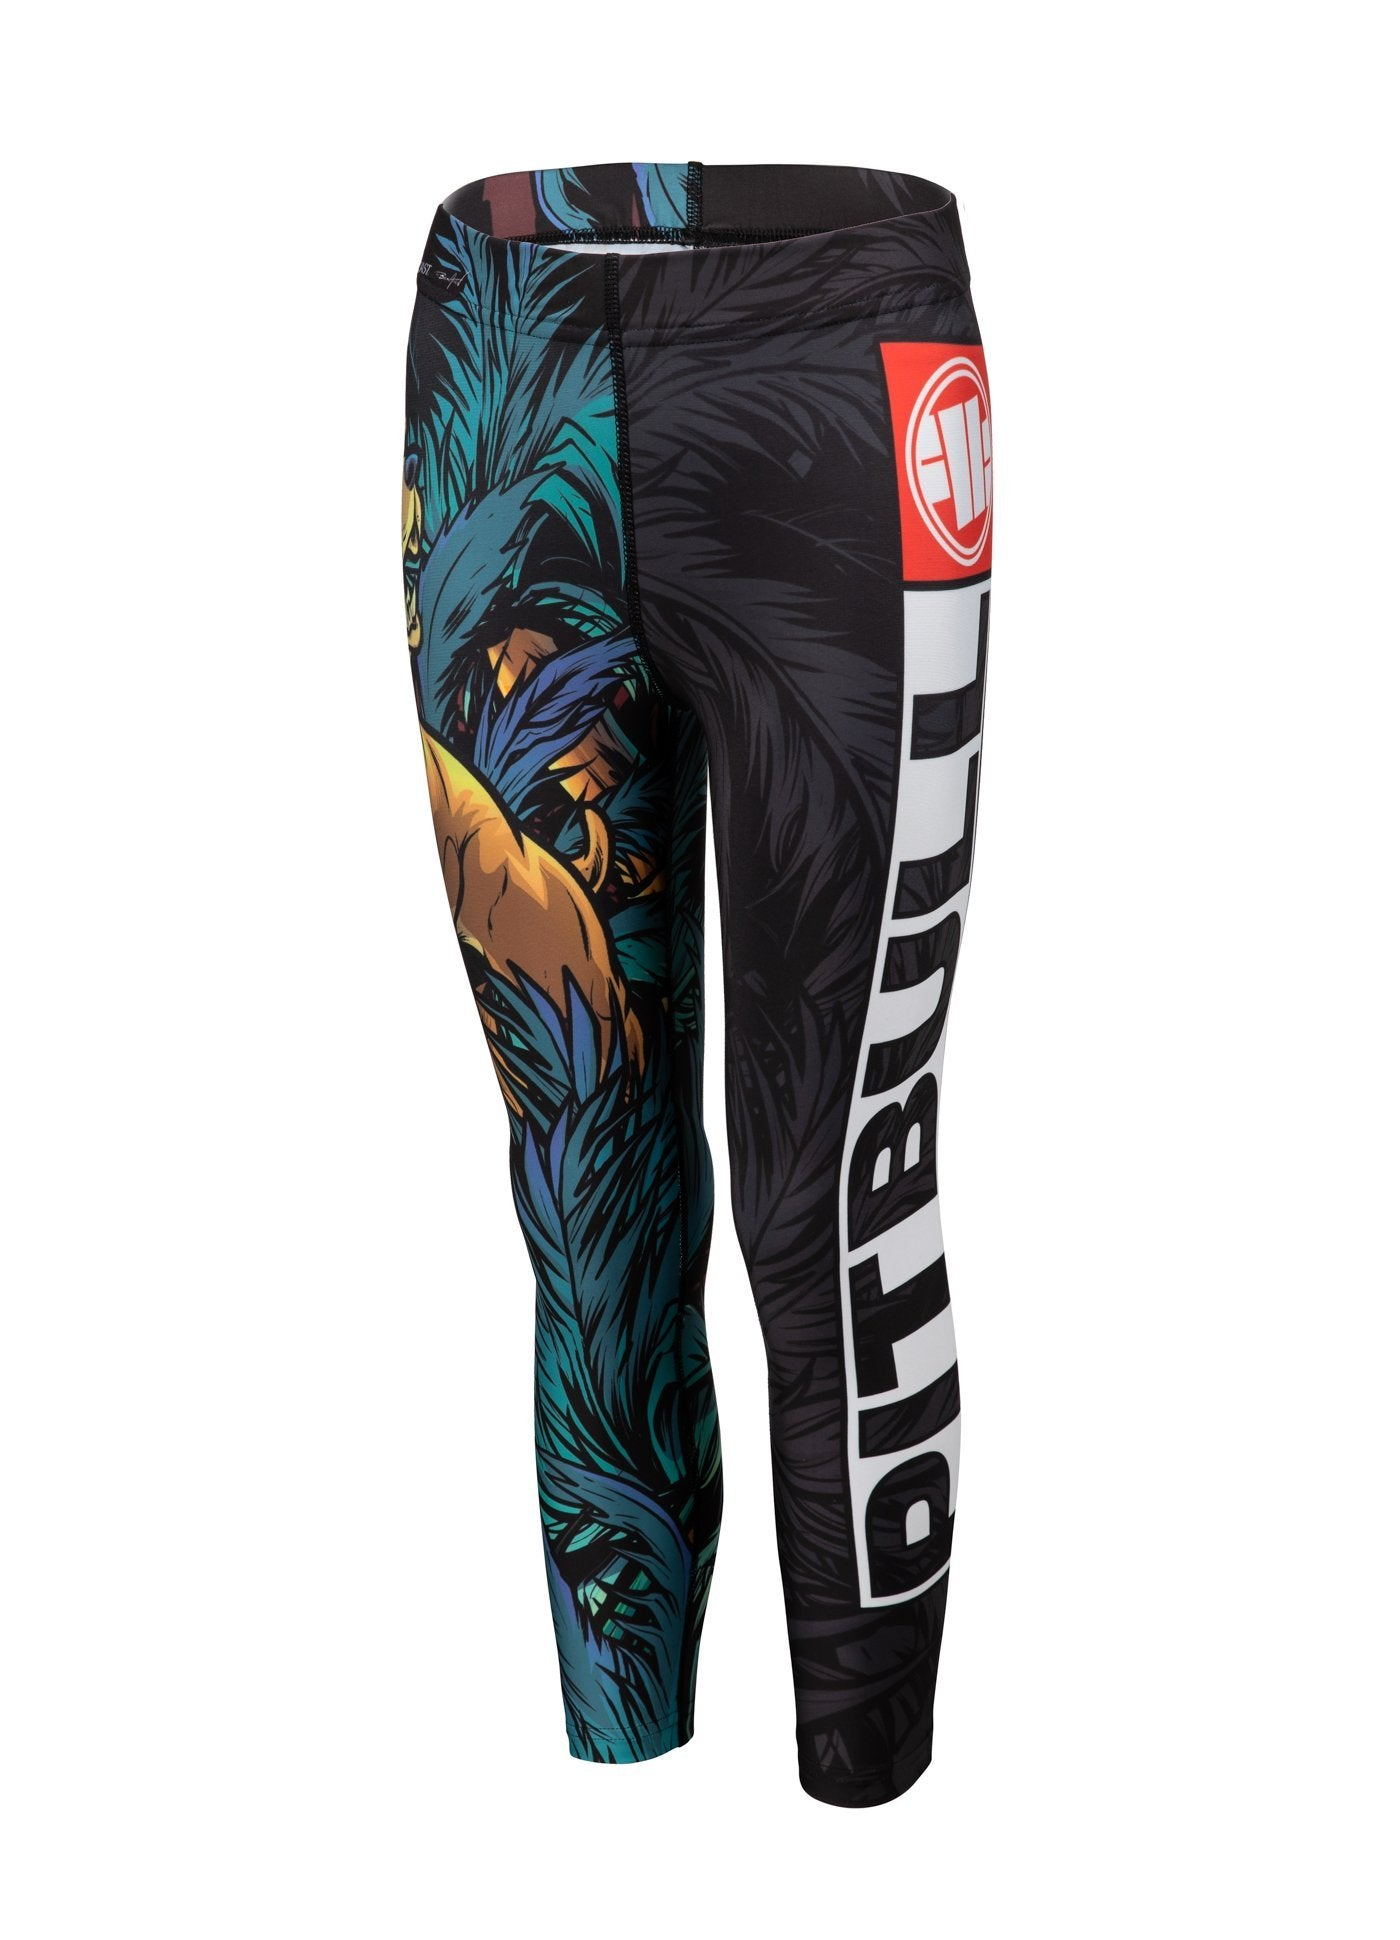 Kids Compression Pants TROPICAL Black - Pitbull West Coast U.S.A.